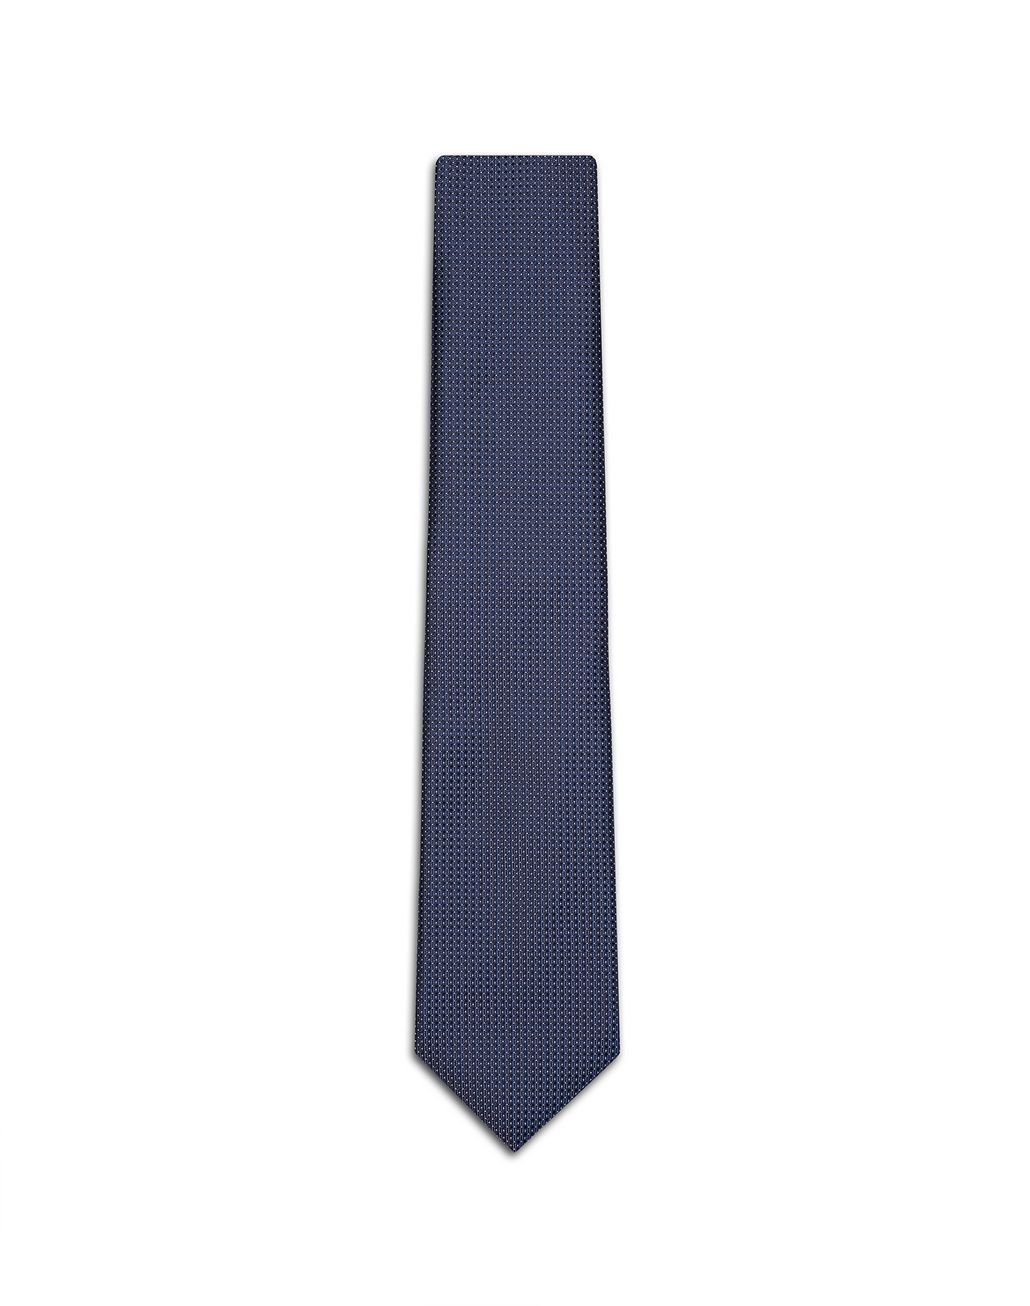 BRIONI Navy-Blue and White Dotted Tie Tie Man f